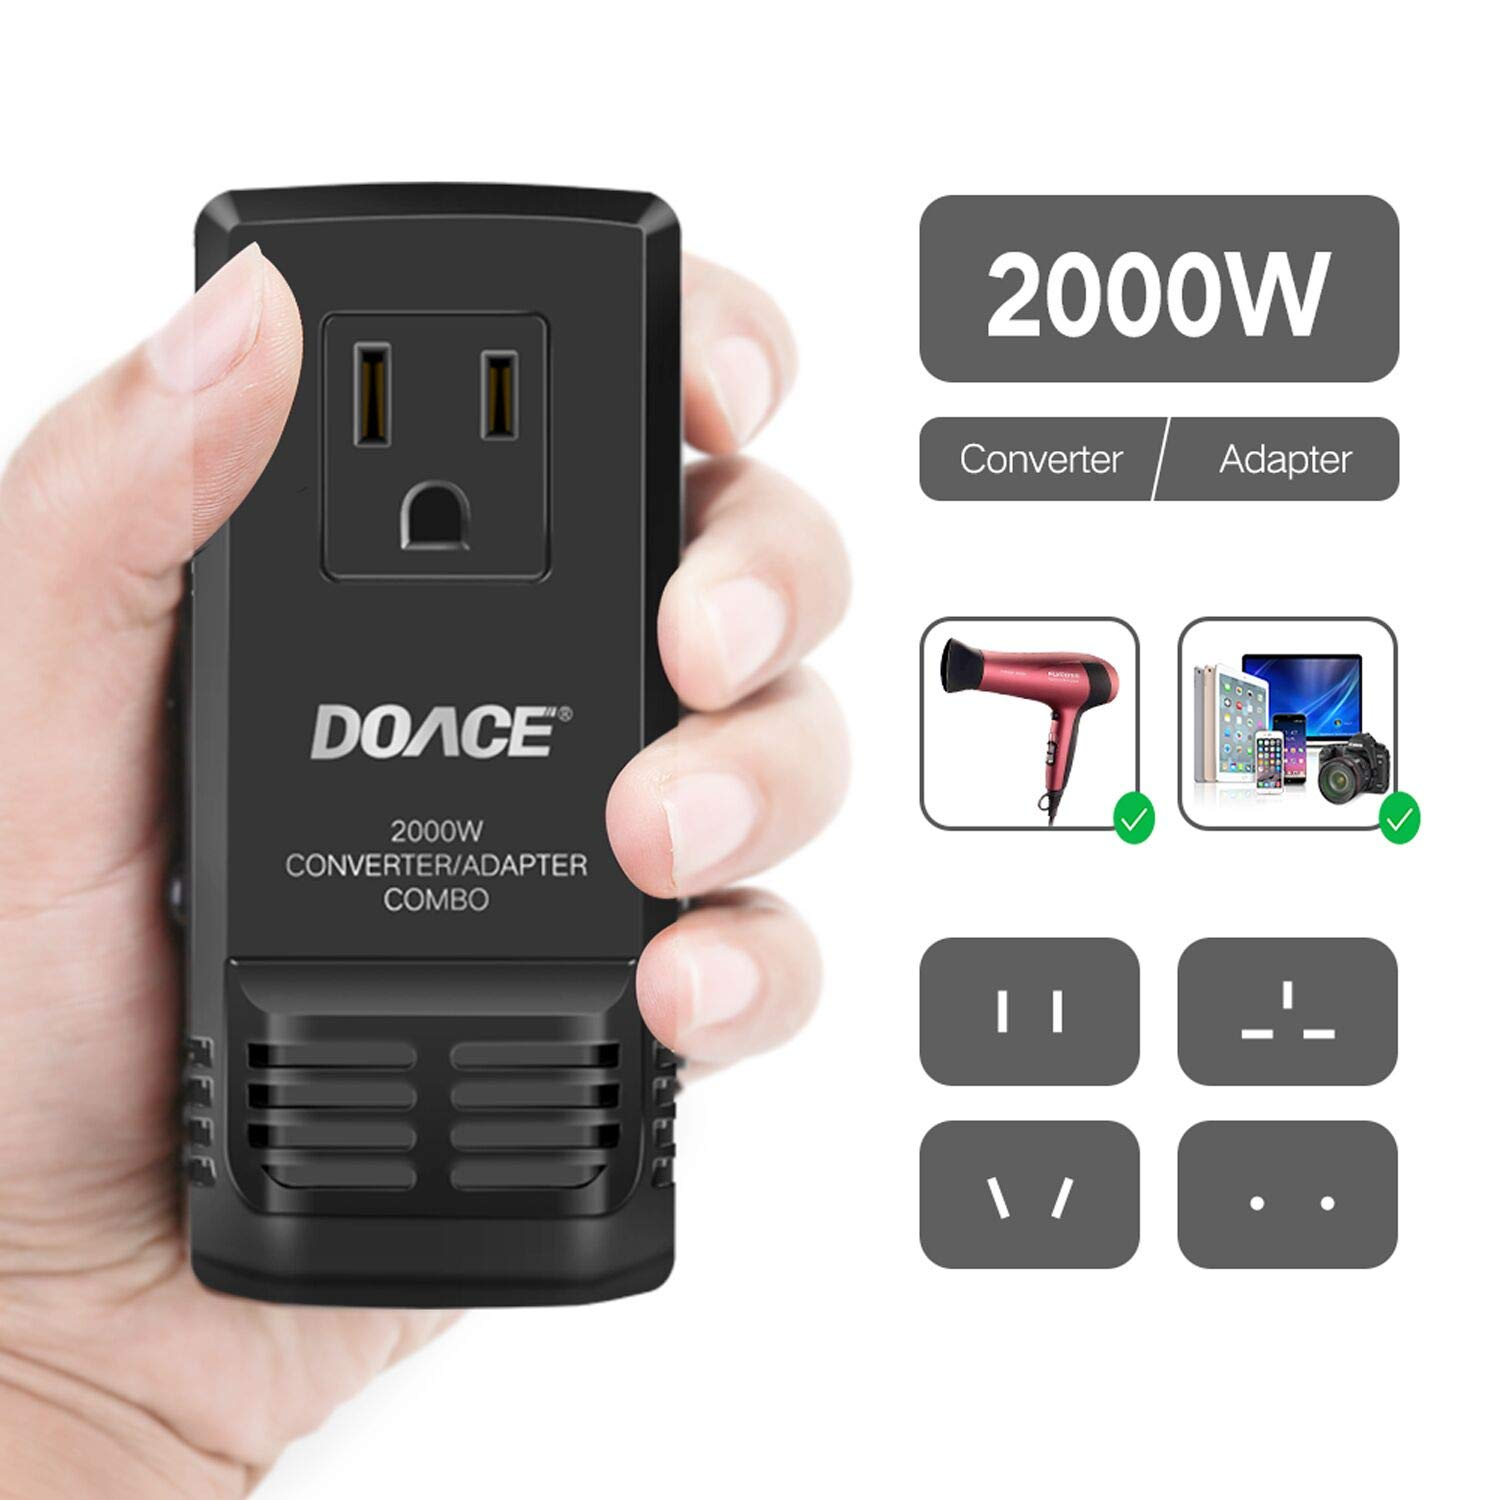 [Upgraded] DOACE 2000W Travel Voltage Converter for Hair Dryer, All in One Adapter Plug for UK/AU/US/EU for Phone, Camera, Tablet, Laptop, Set Down 220V to 110V International Mini Transformer